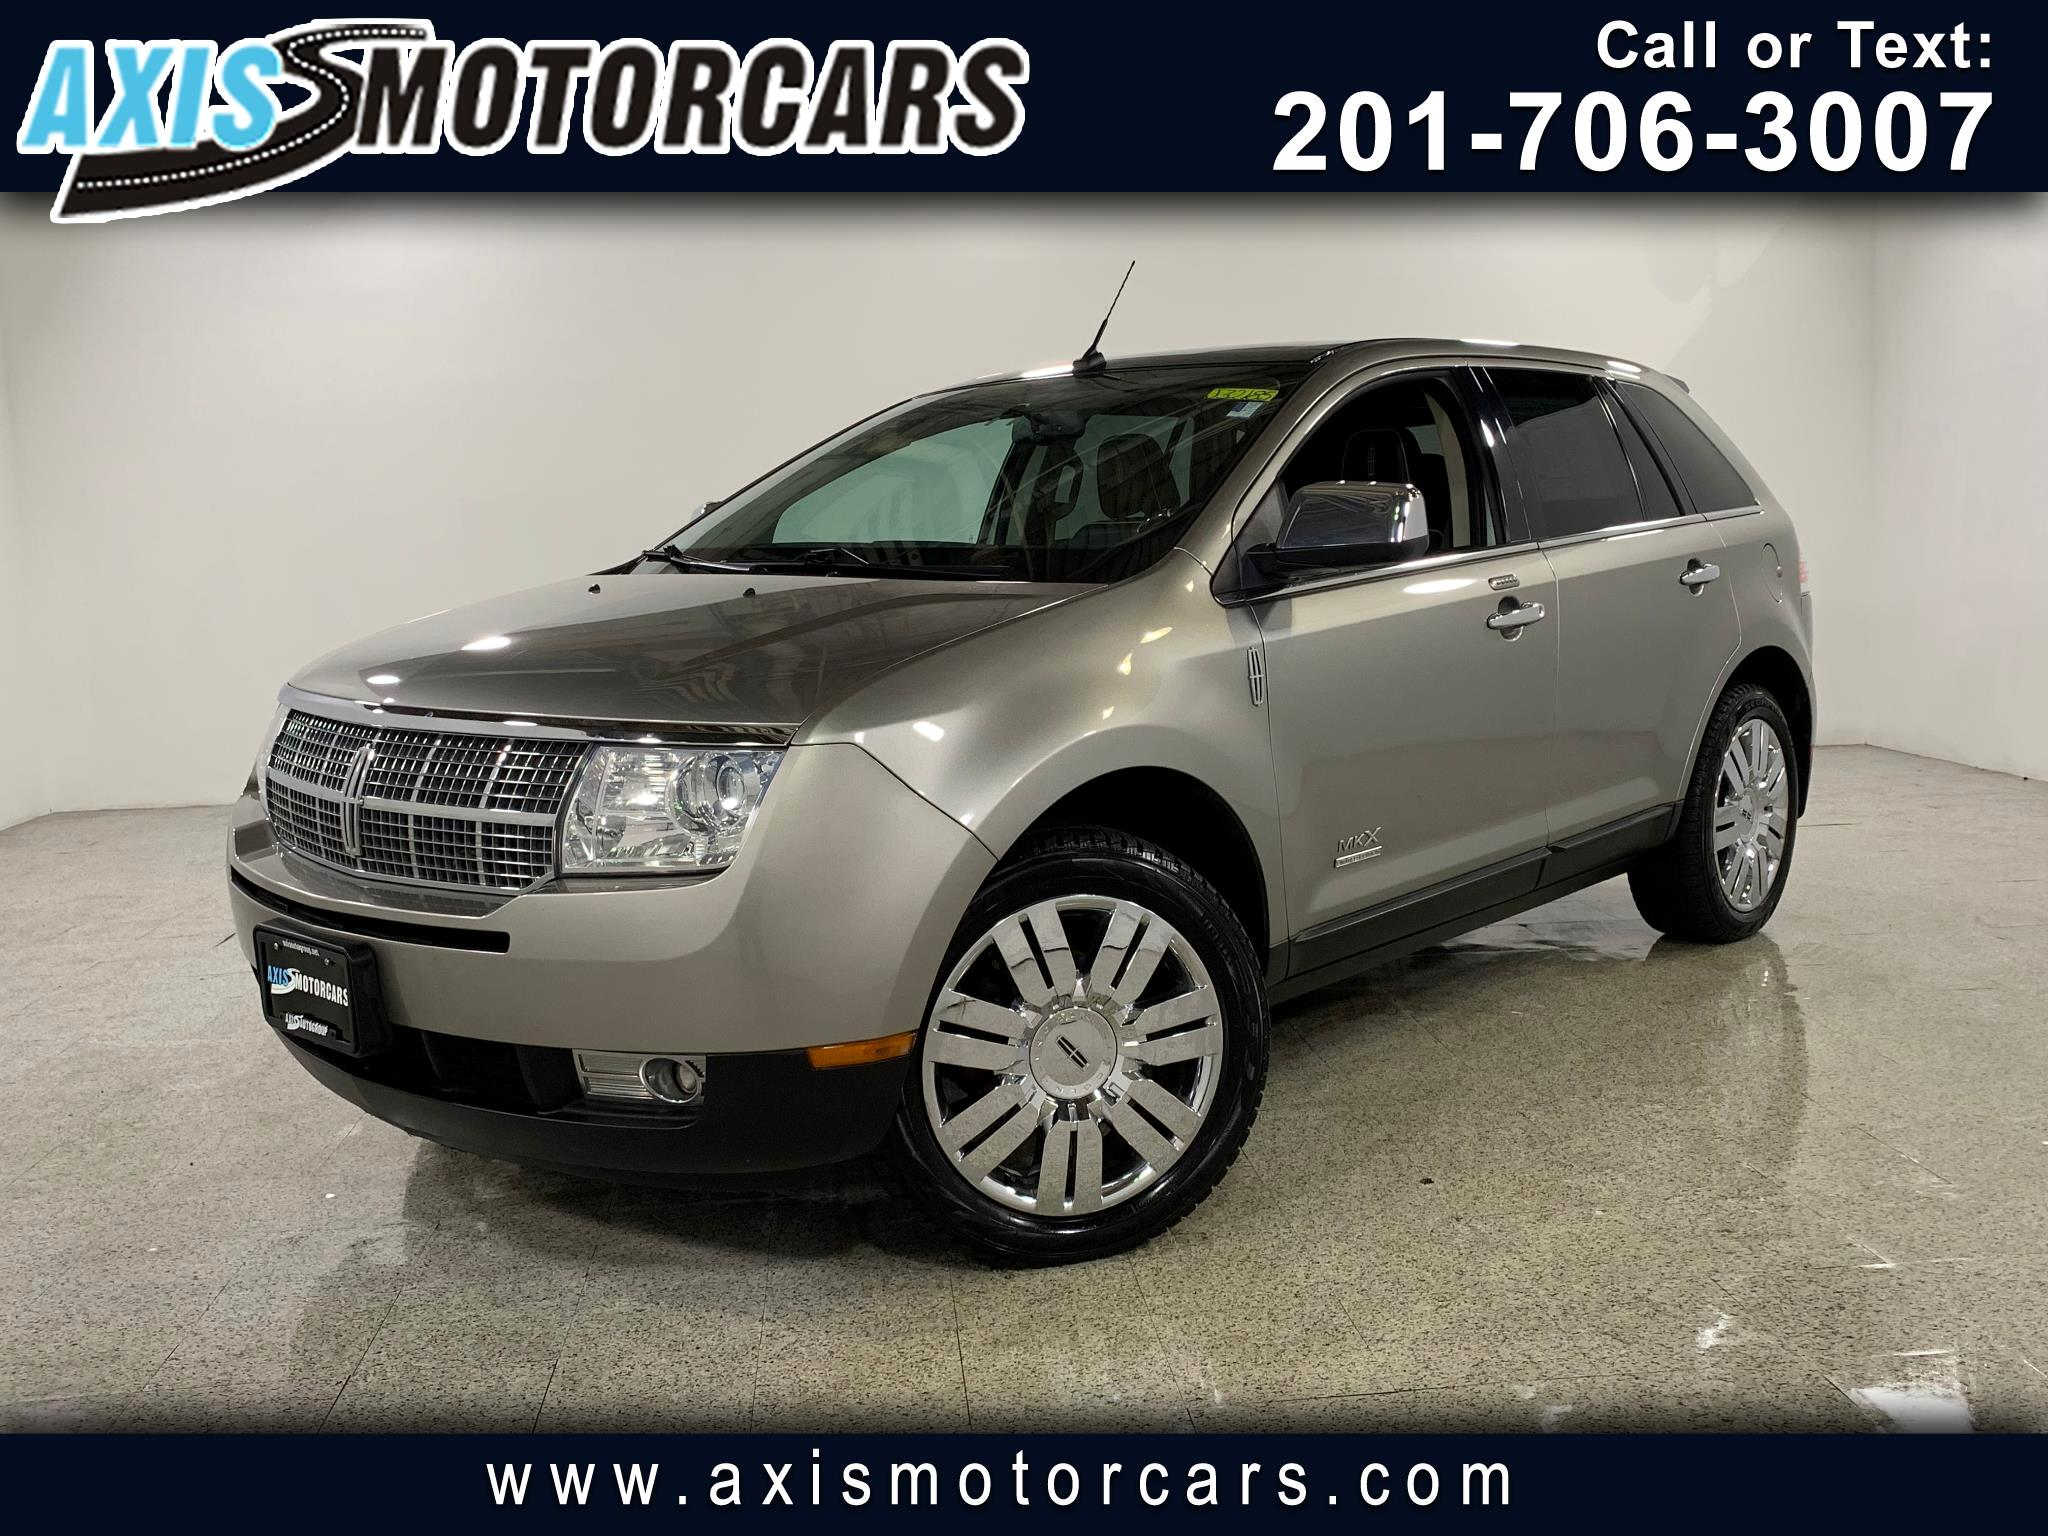 2008 Lincoln MKX w/Sunroof Leather